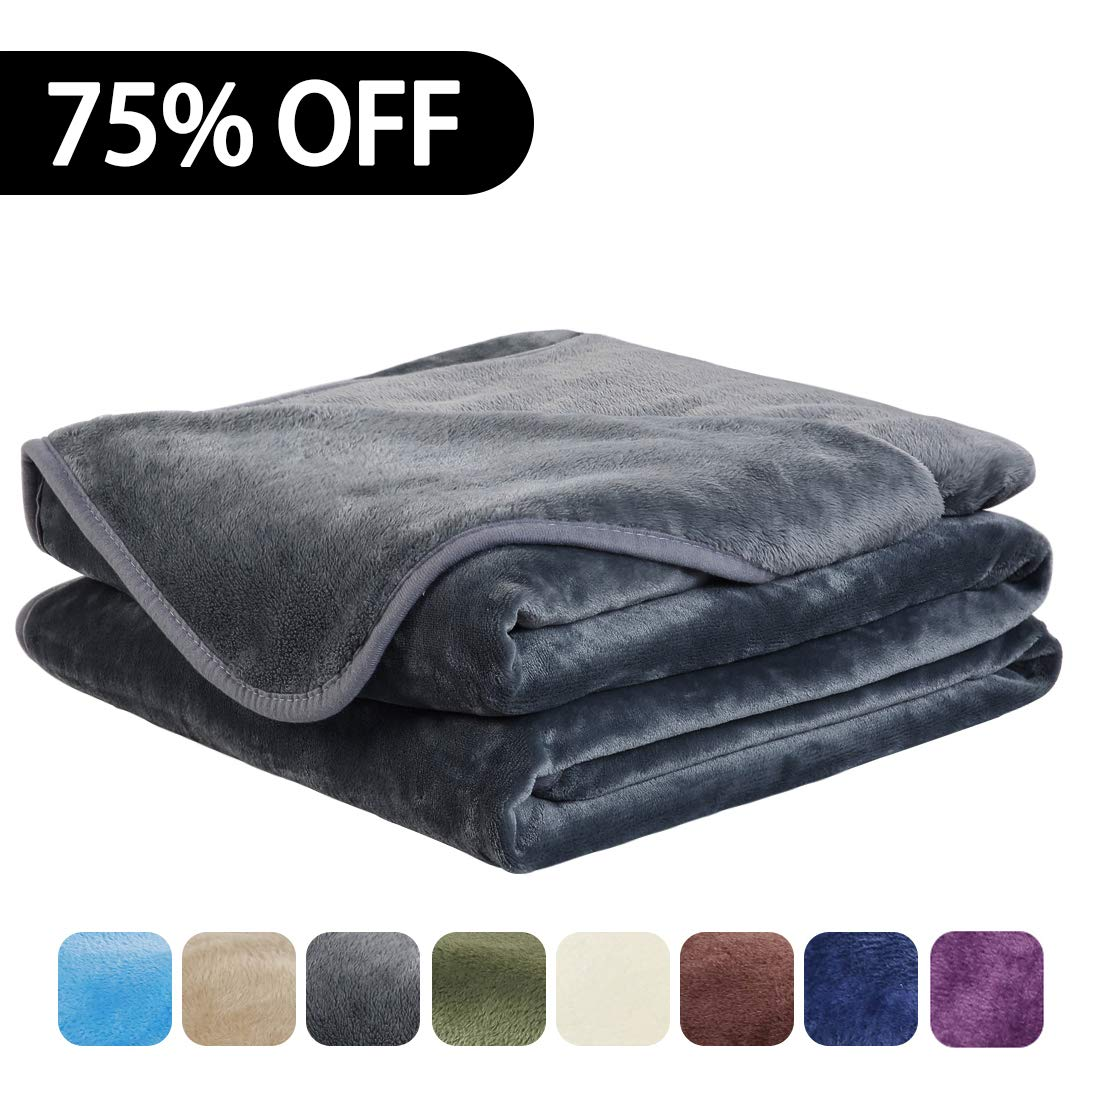 EASELAND Soft Queen Size Summer Blanket All Season Warm Fuzzy Microplush Lightweight Thermal Fleece Blankets for Couch Bed Sofa,90x90 Inches,Dark Gray